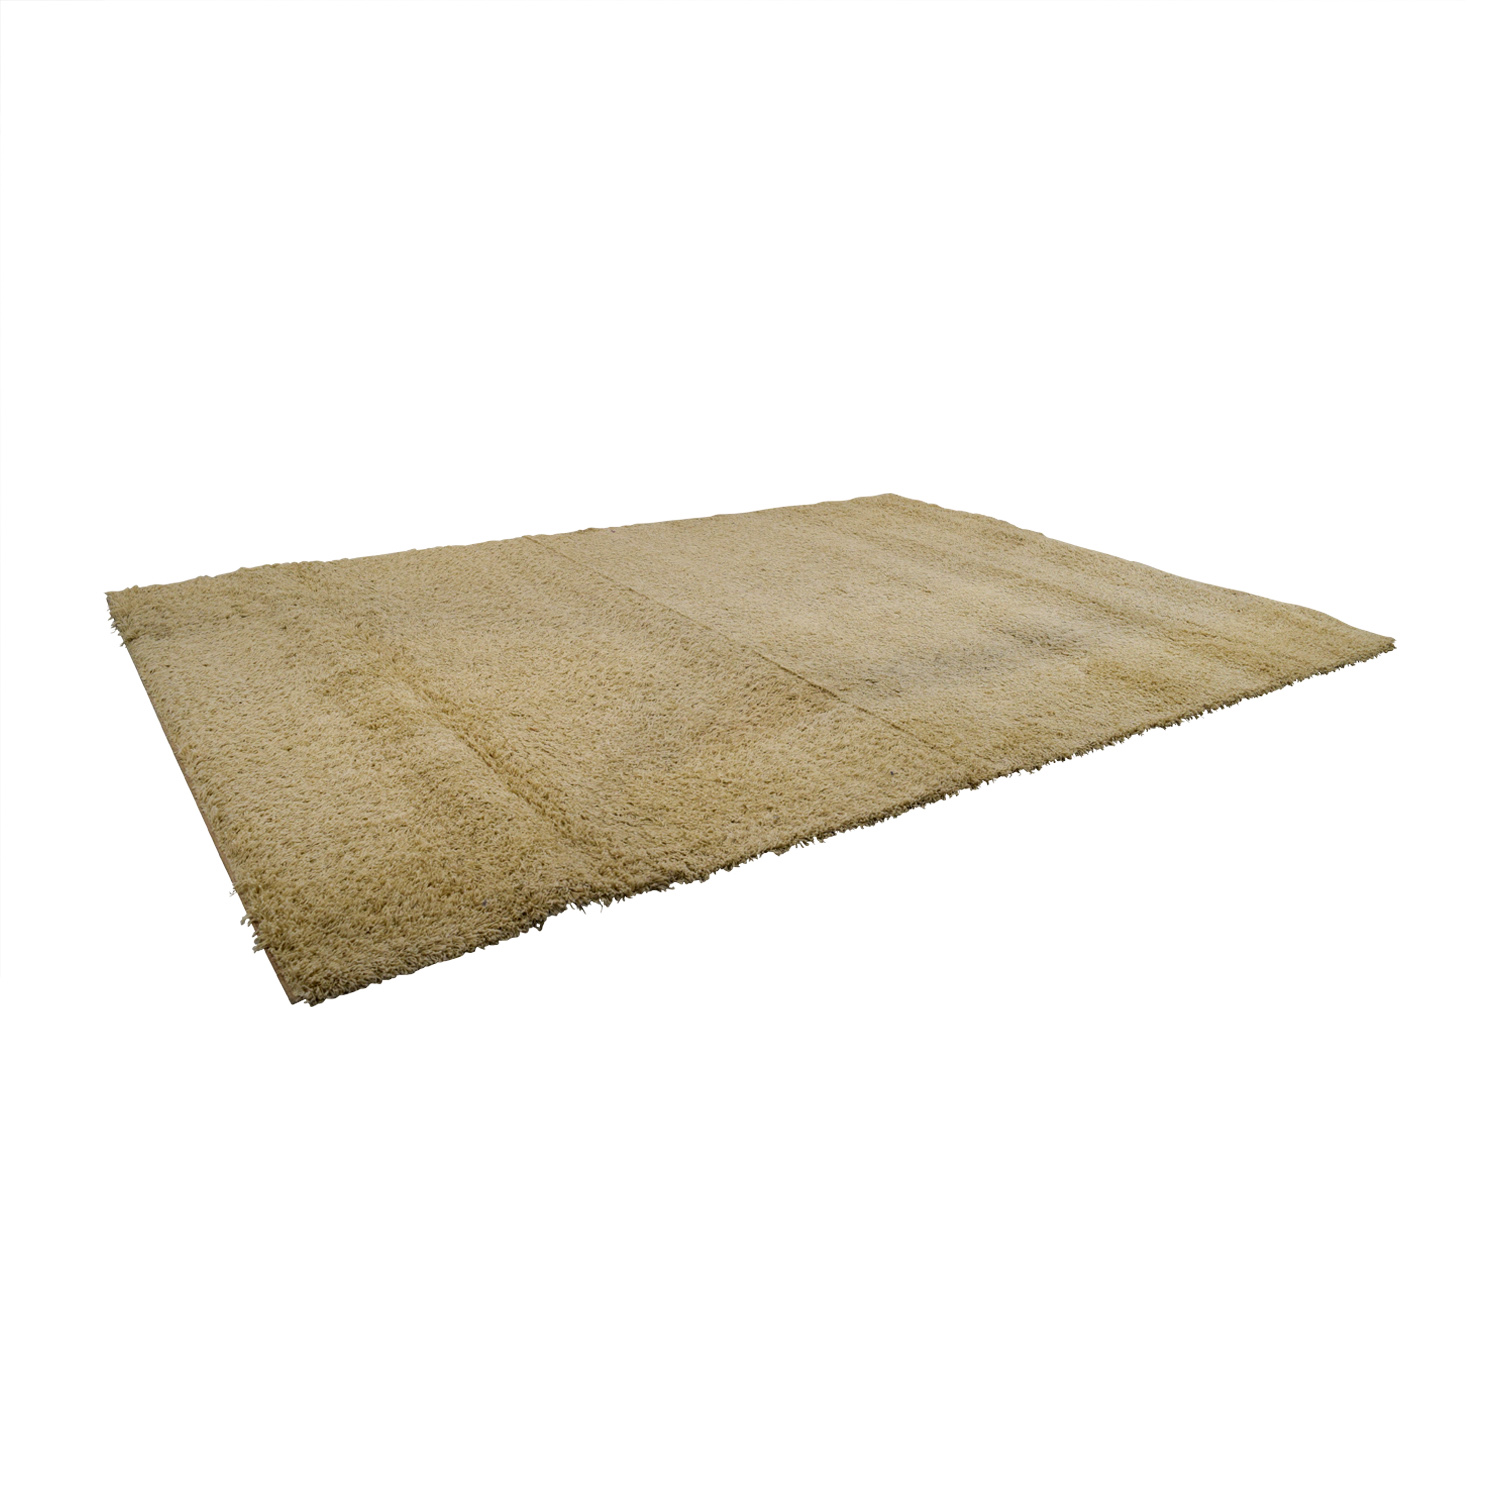 Large White Shag Rug on sale